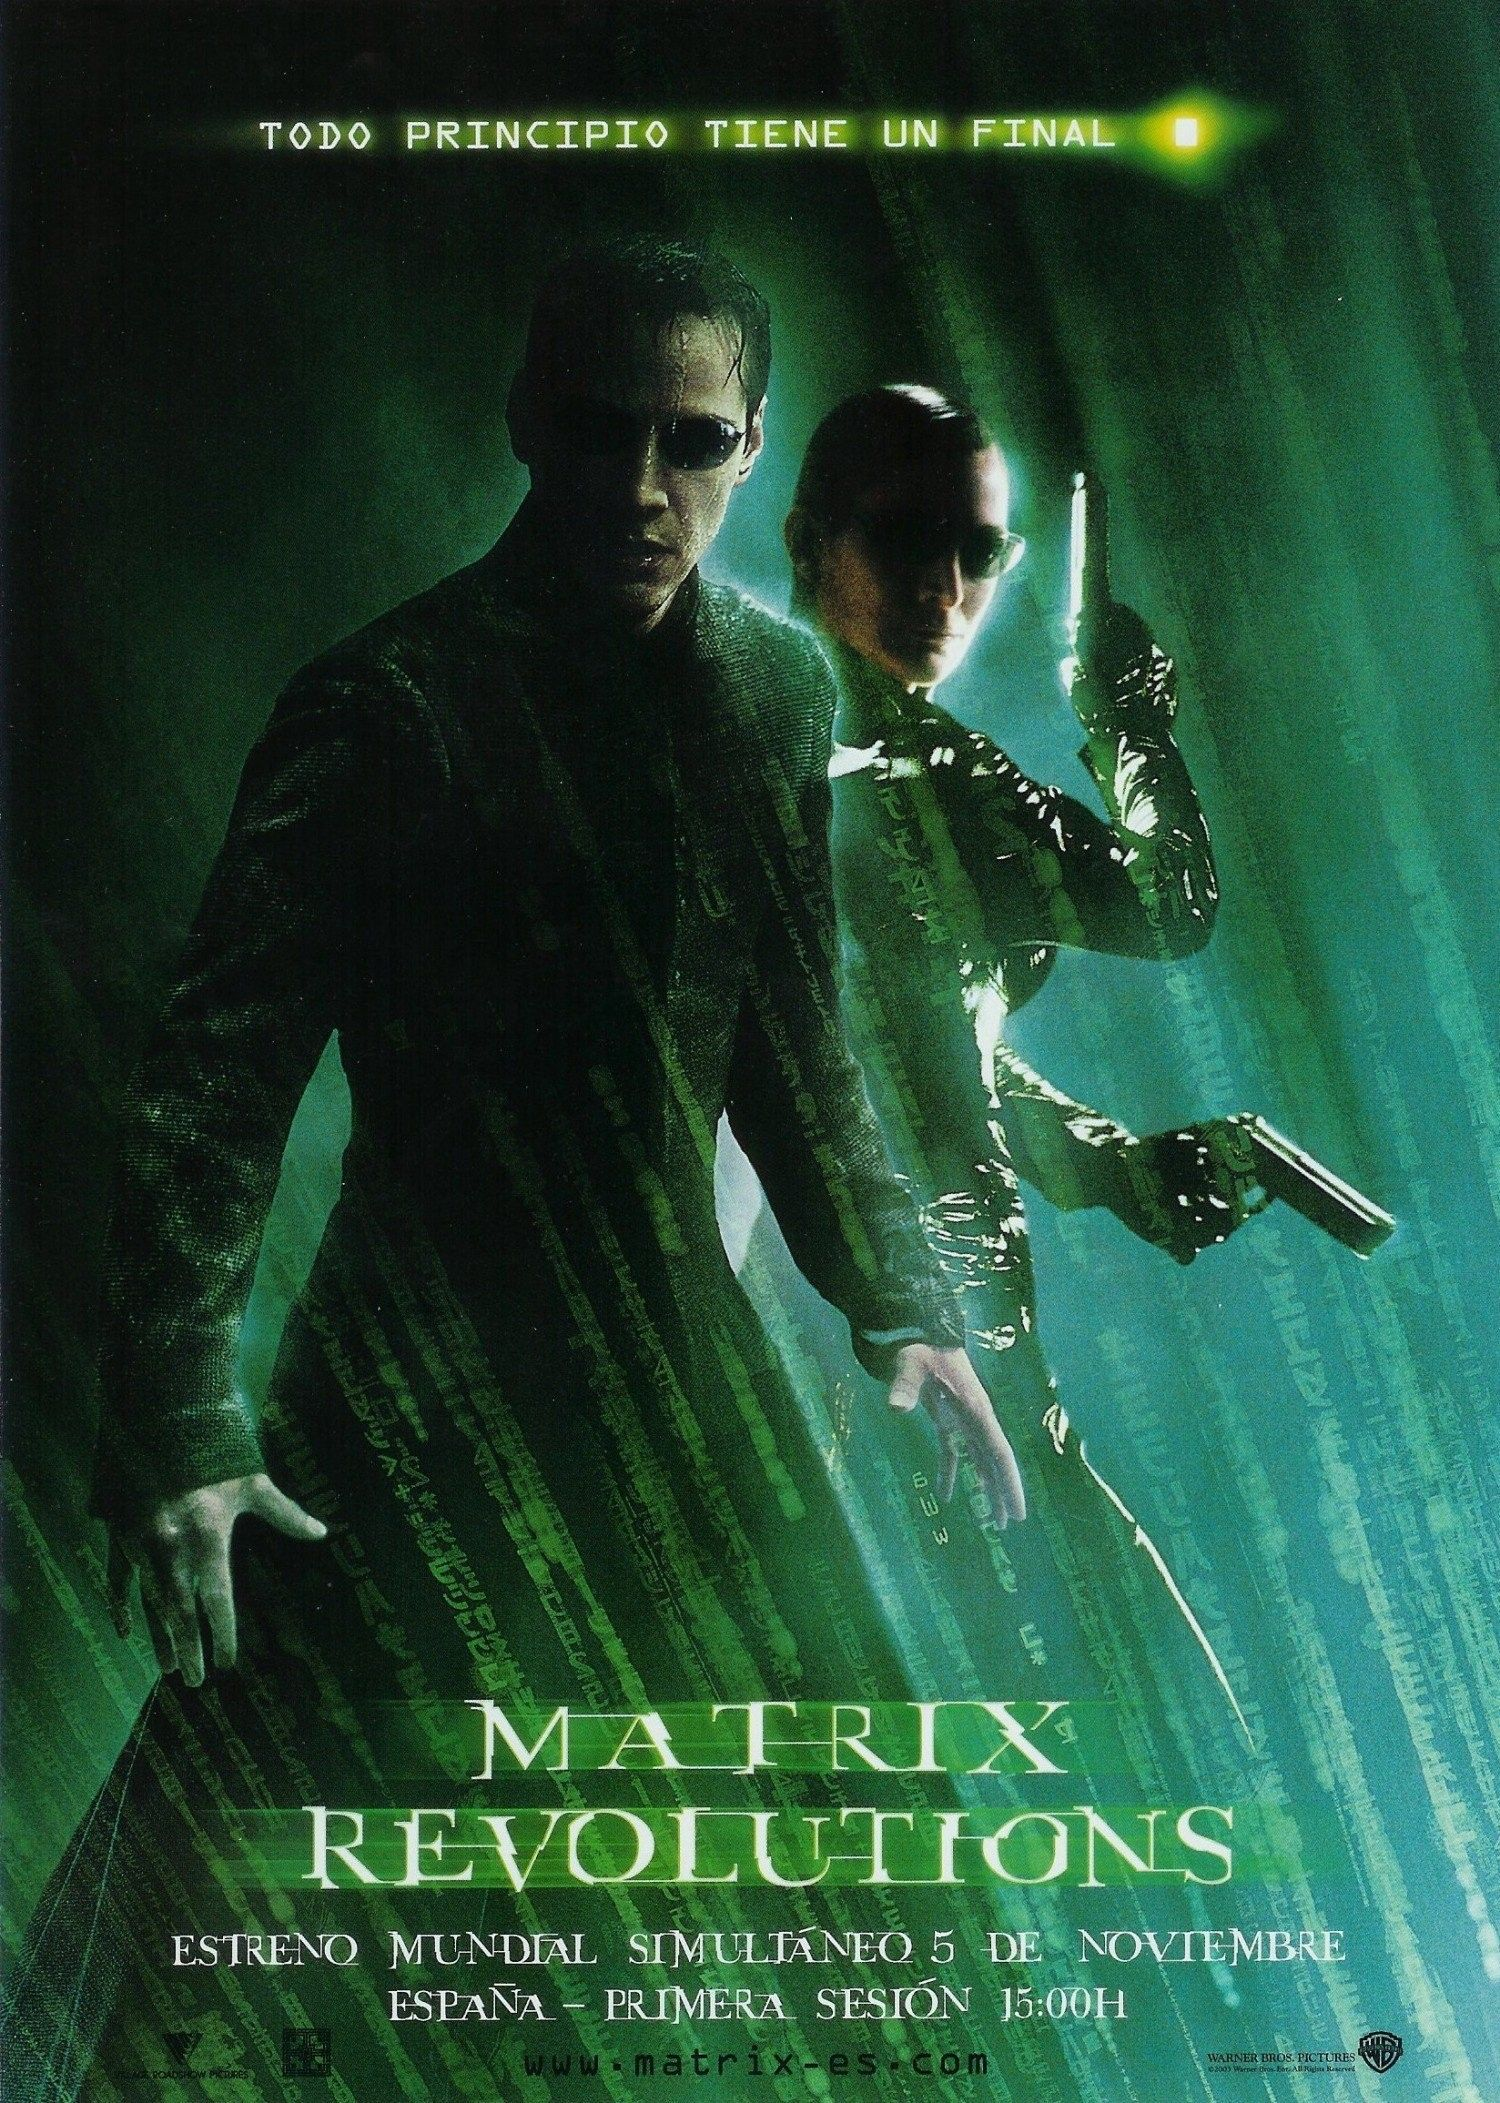 Ver Matrix Revolutions Online Gratis 2003 Hd Película Completa Español The Matrix Movie Movie Posters Revolution Poster